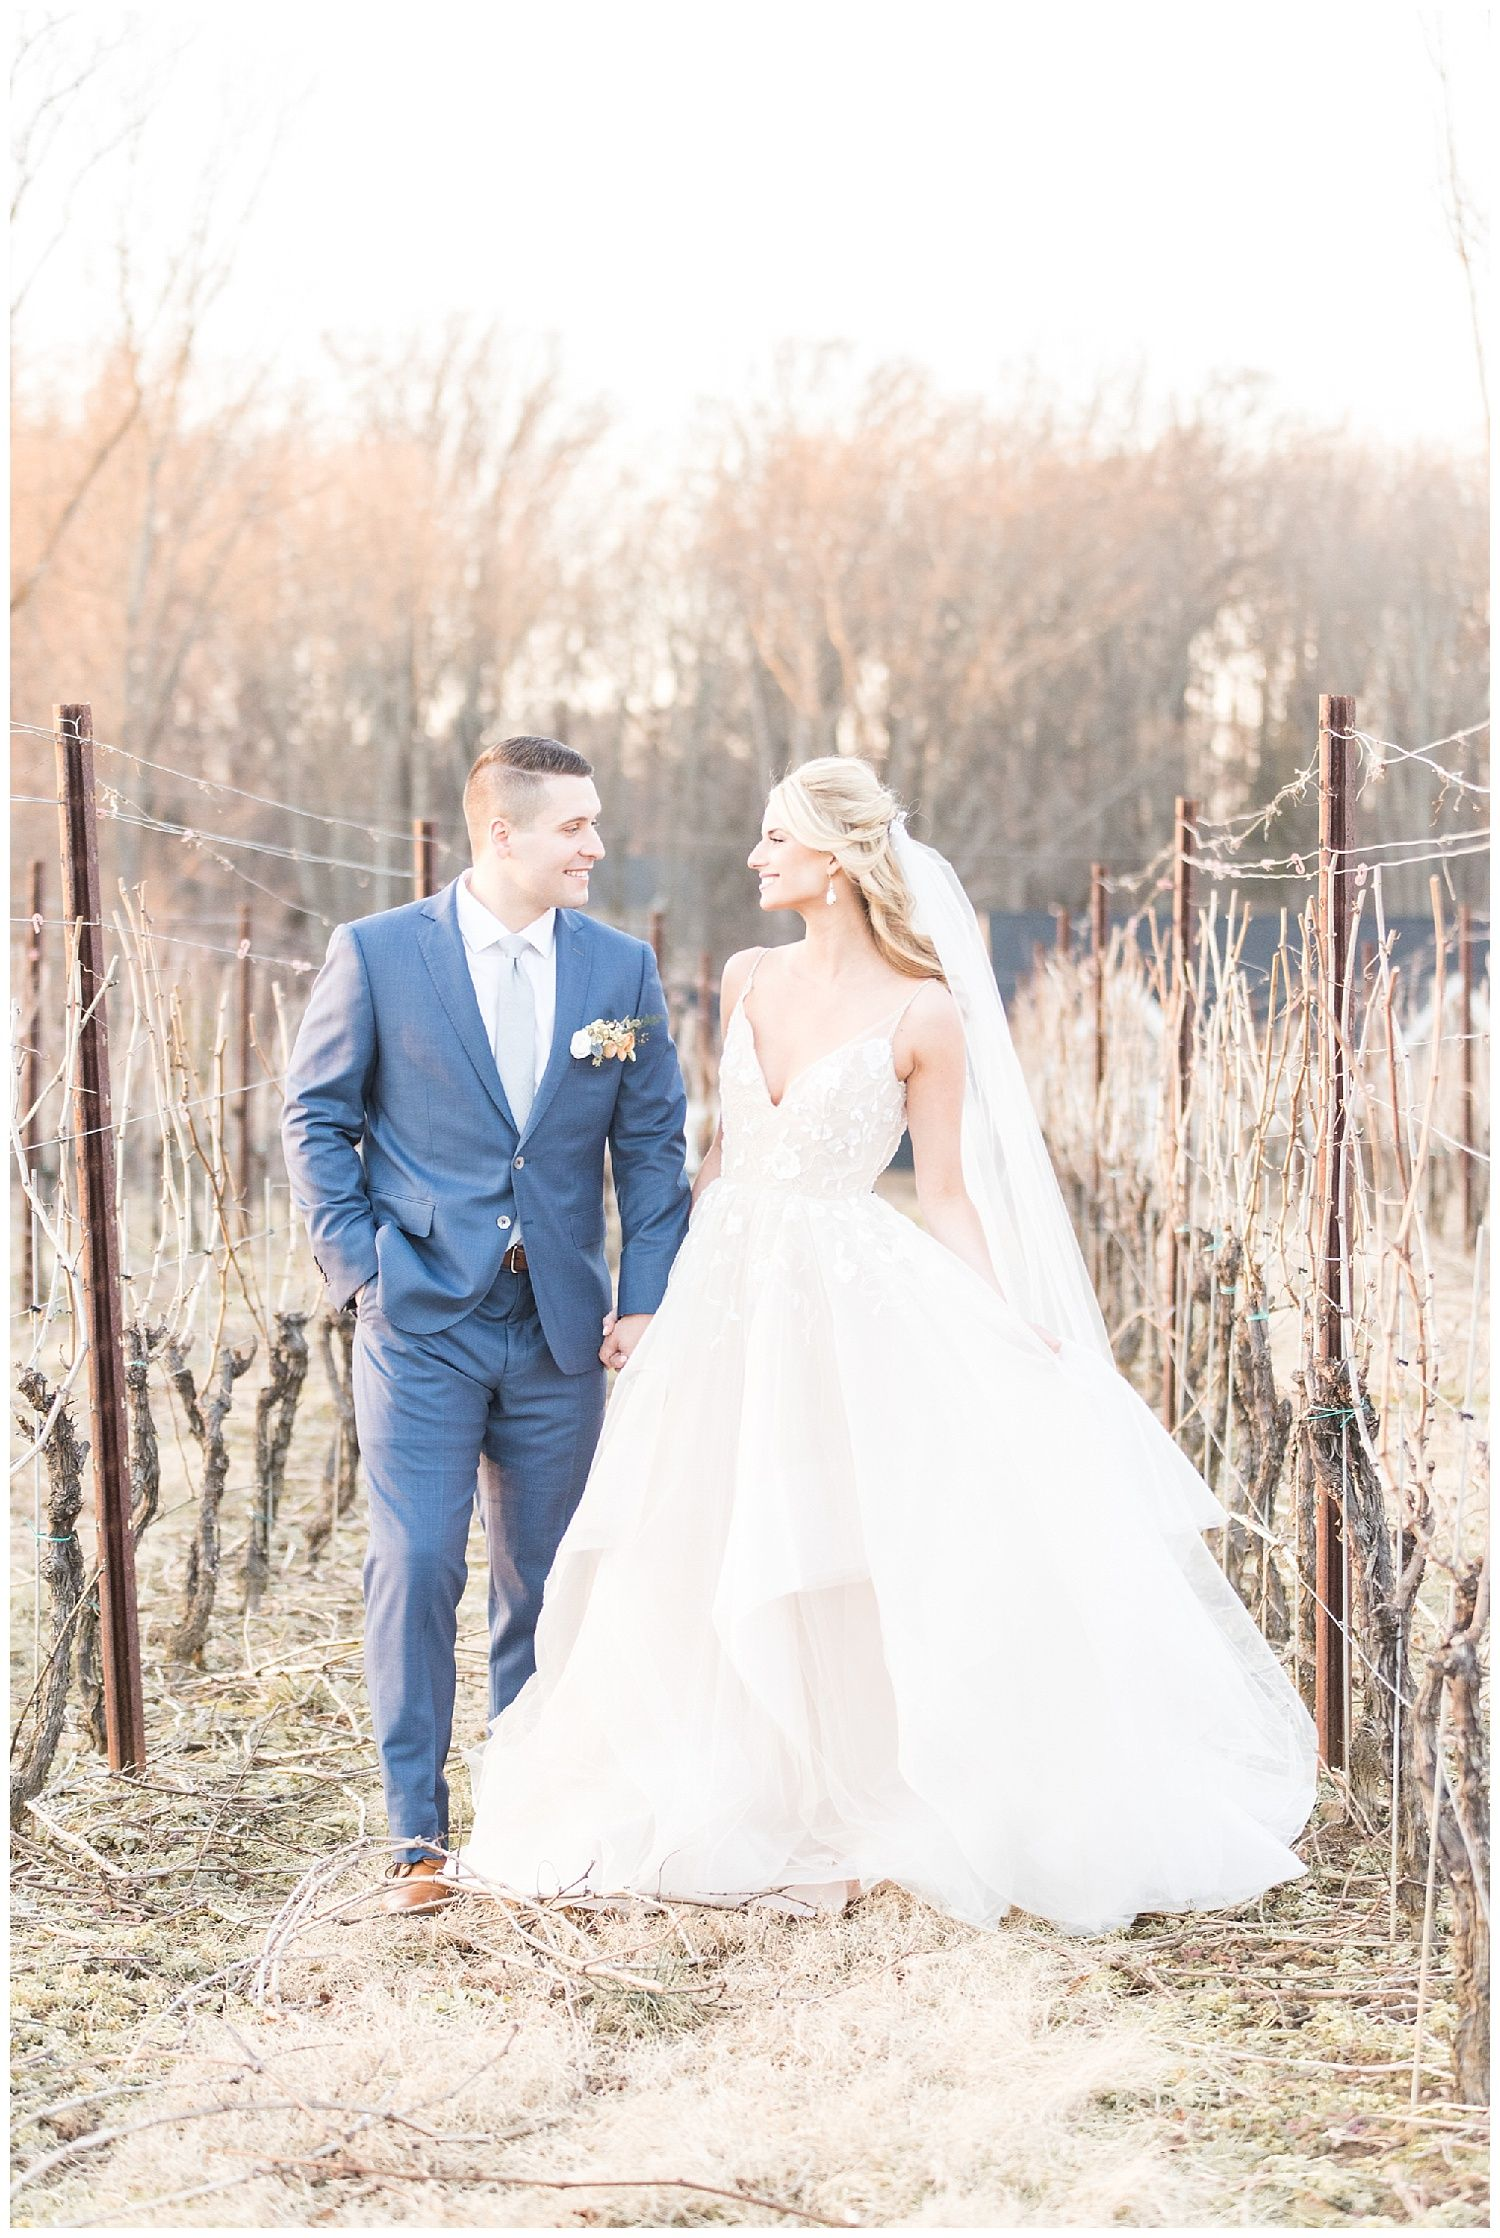 Romantic Styled Elopement At The Inn At Grace Winery Lindsay Eileen Photography Red Oak Weddings A Wedding Lifestyle Blog For Red Oak Weddings A Weddi Wedding Venues Pennsylvania Pennsylvania Wedding Photography